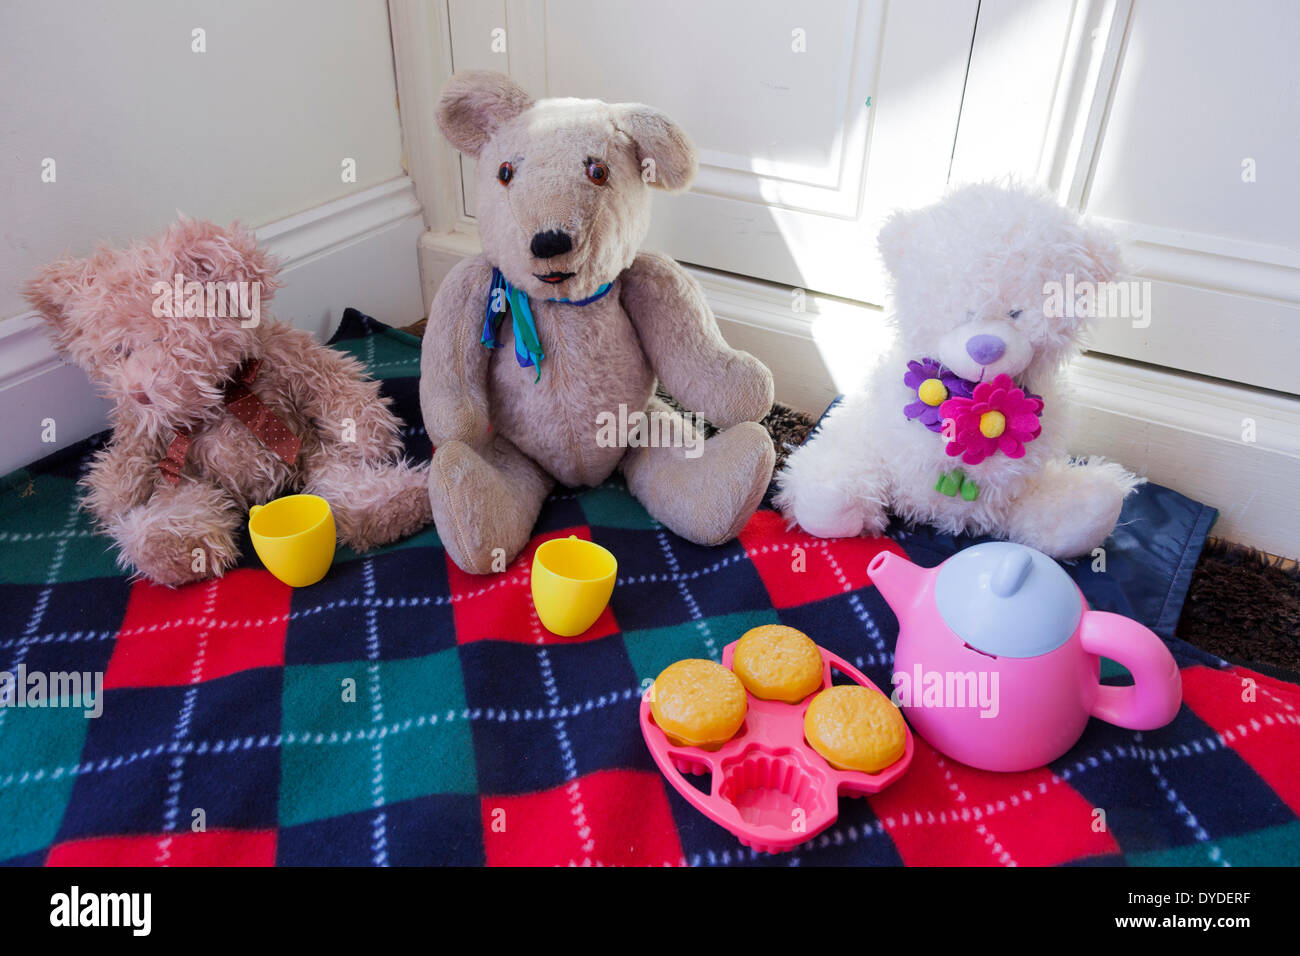 Soft toy set for a childrens teddy bears picnic on a blanket. - Stock Image